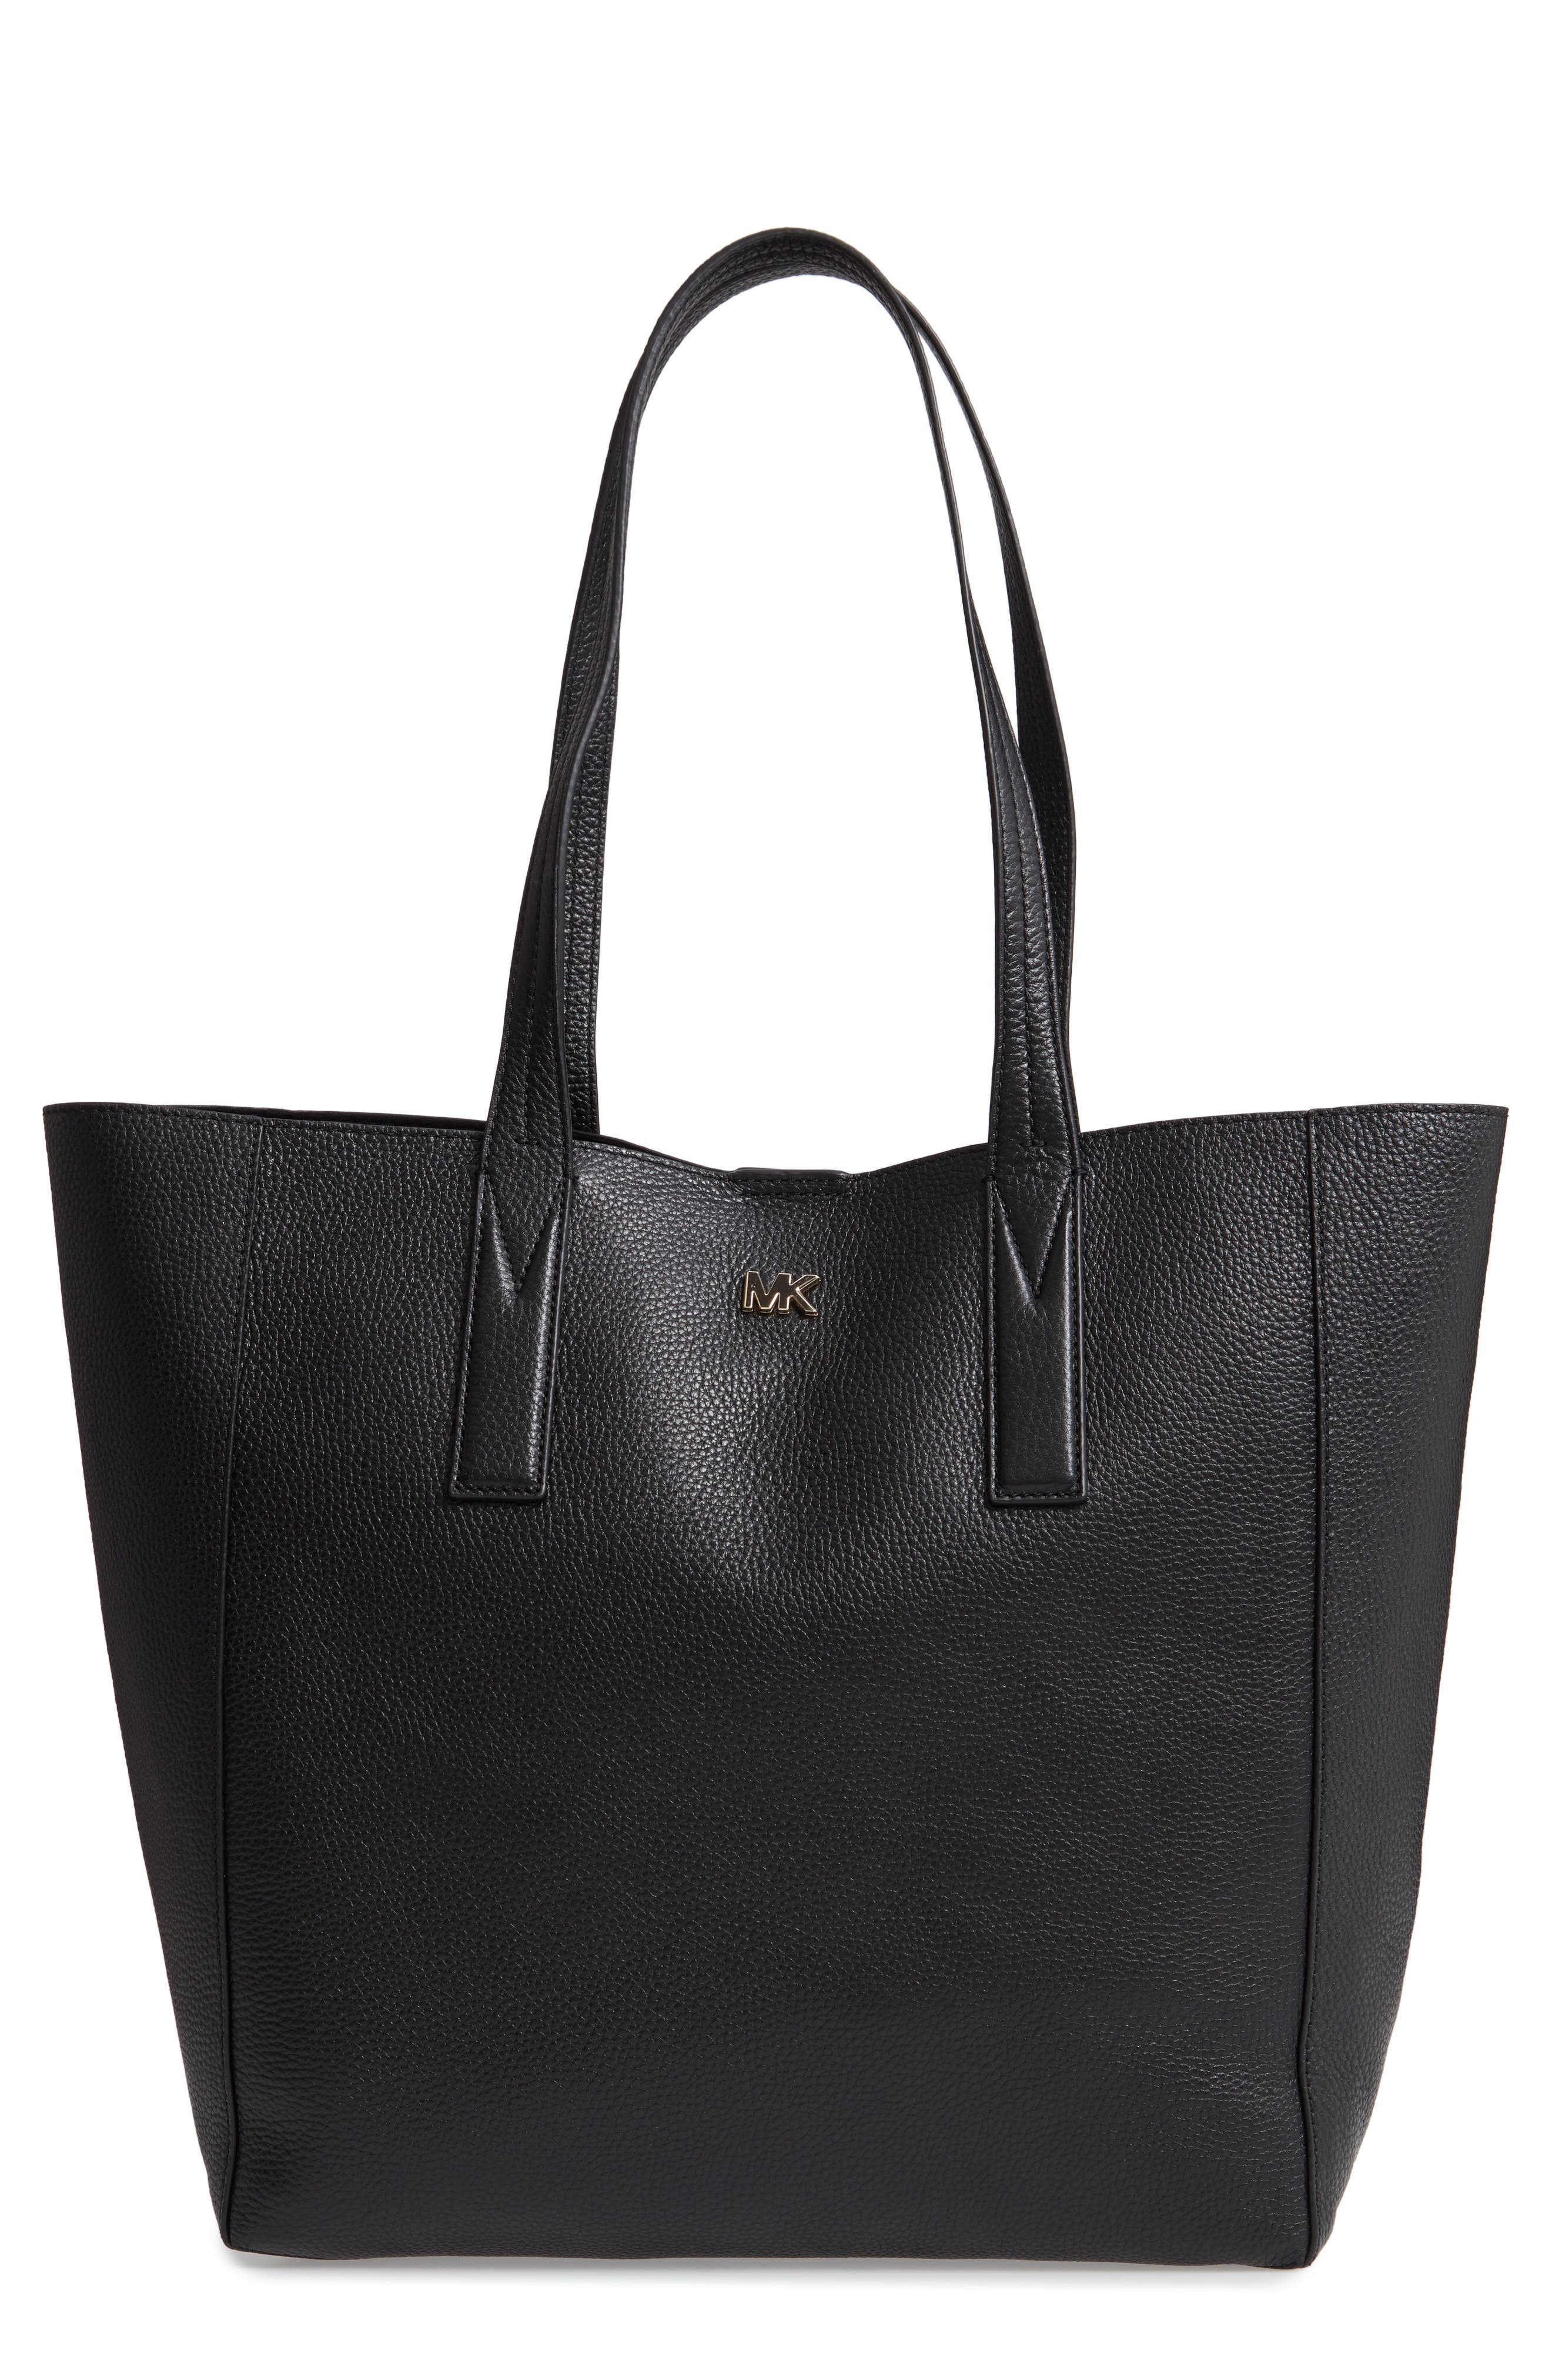 MICHAEL MICHAEL KORS, Large Leather Tote, Main thumbnail 1, color, 001